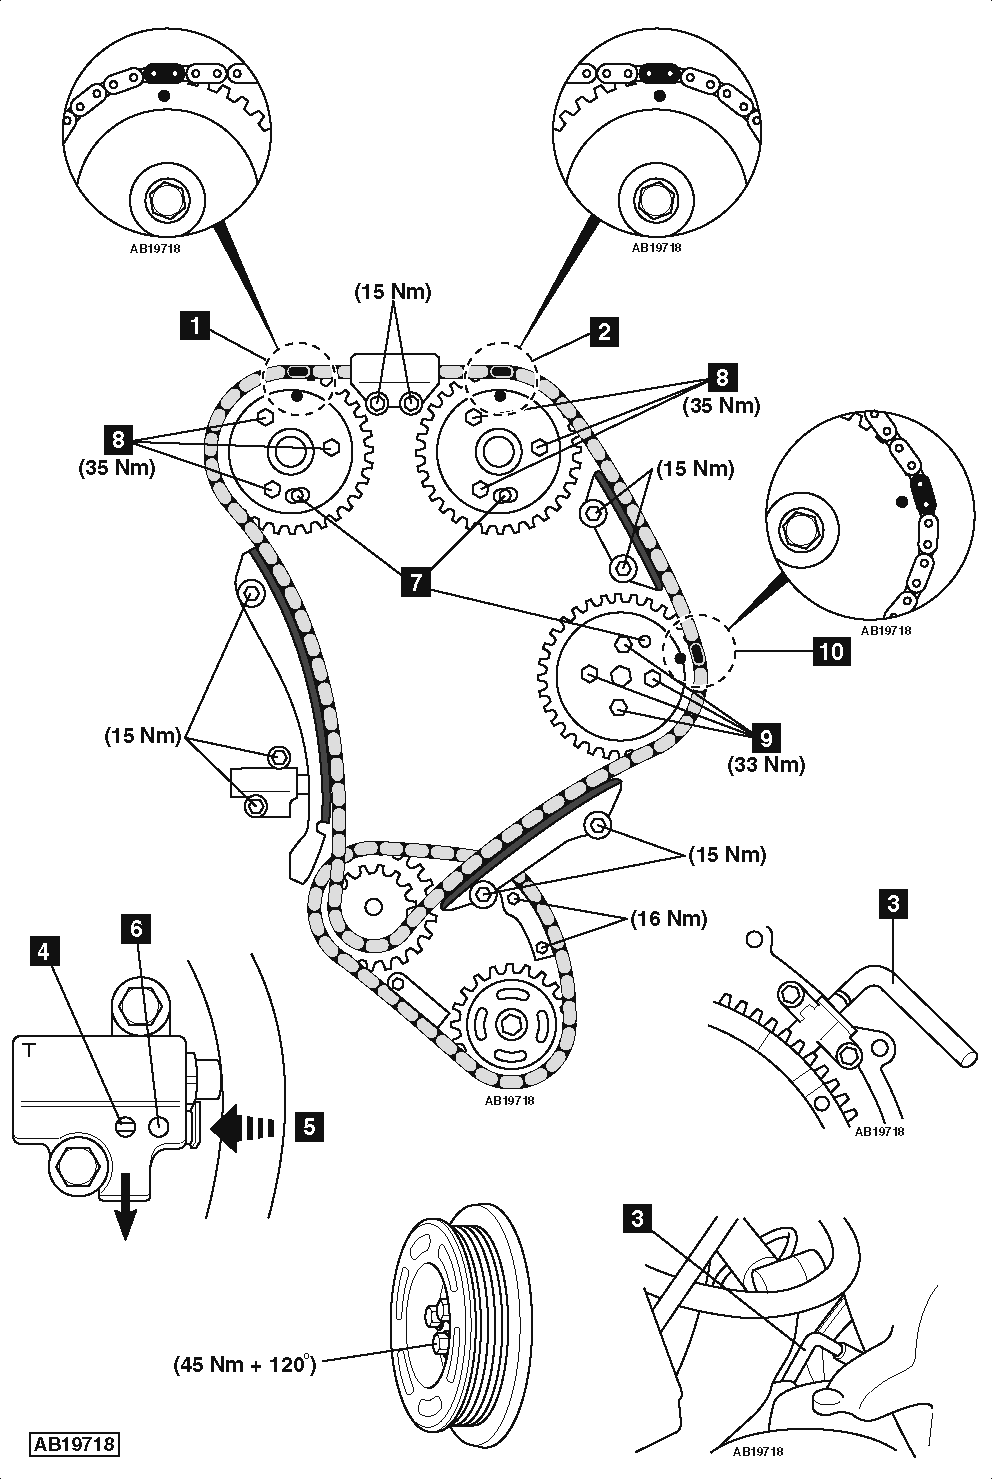 Ford Ranger Crankshaft Position Sensor Wiring Diagram